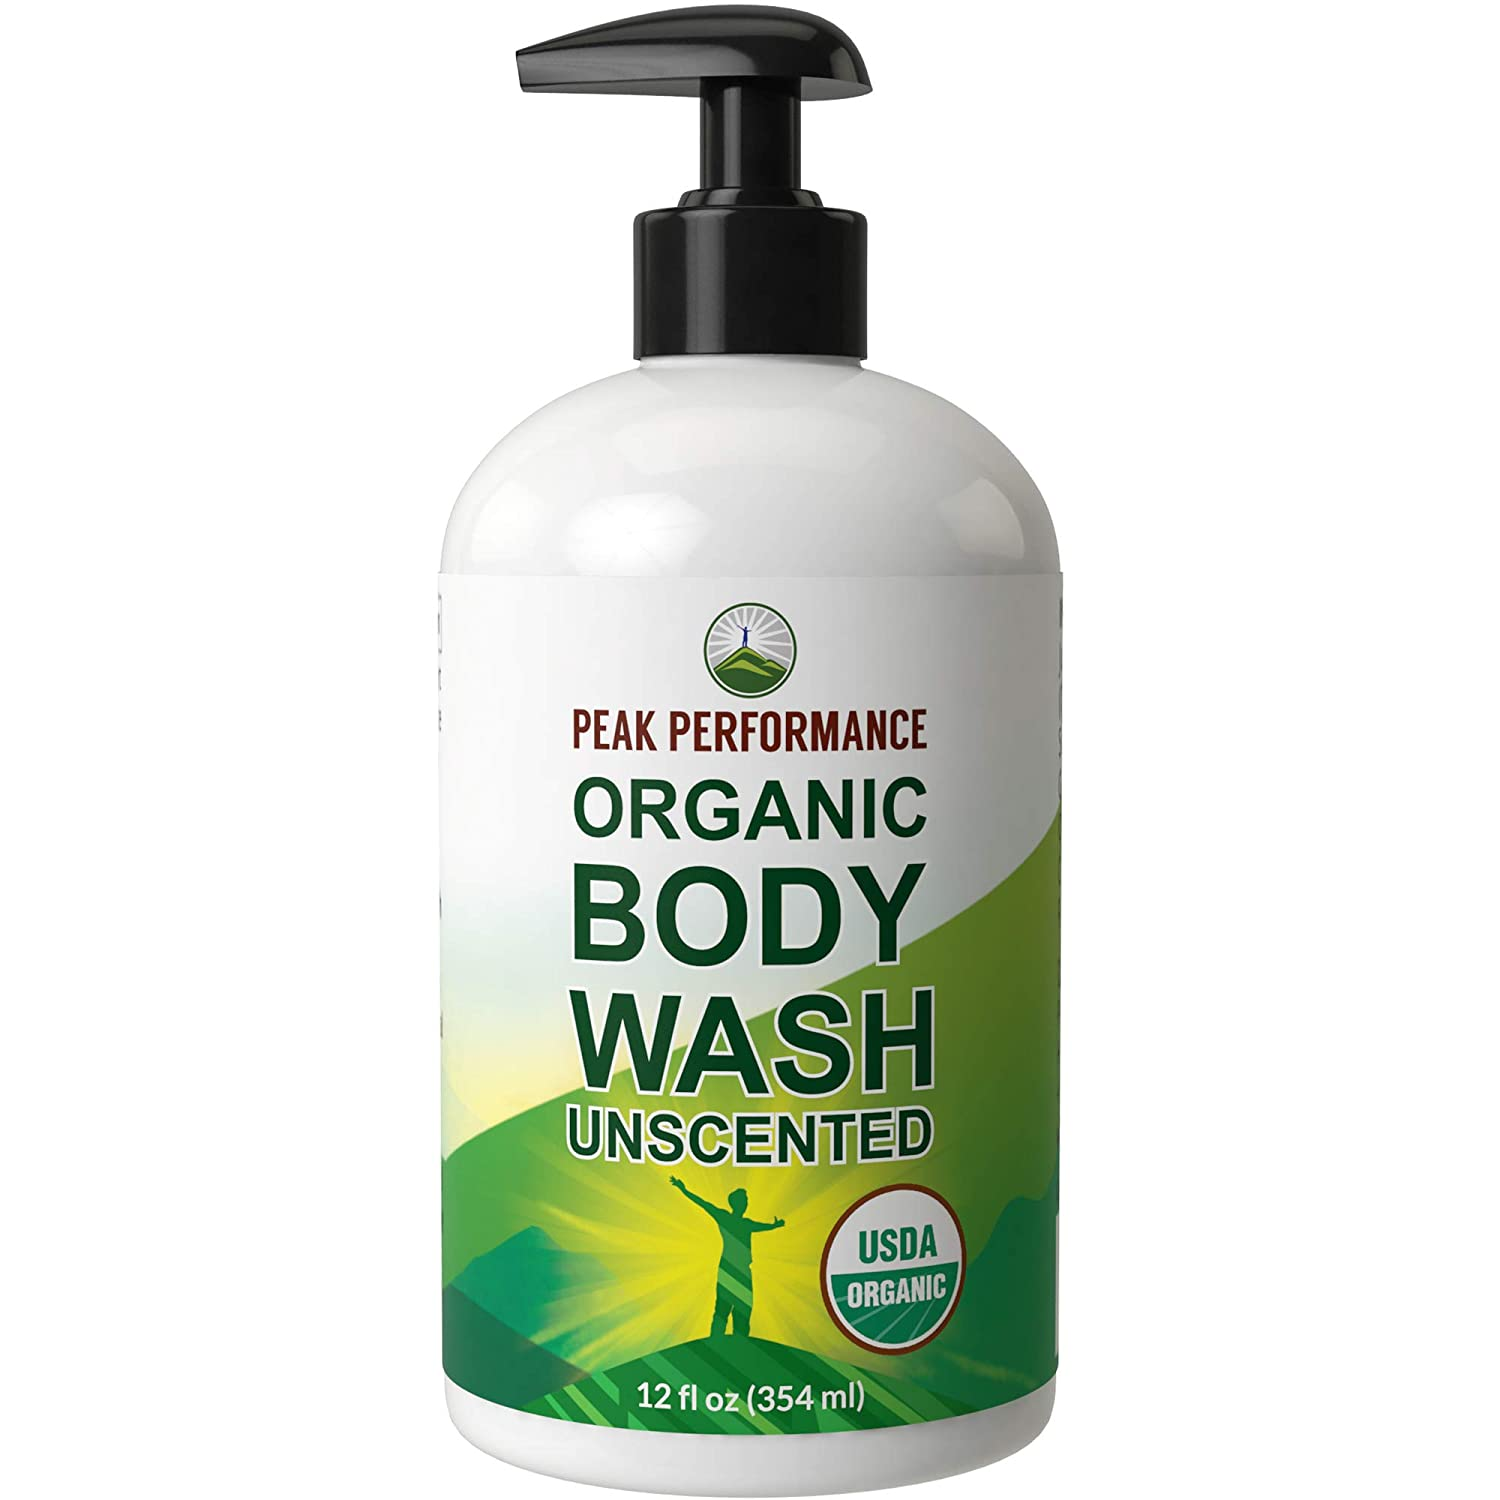 USDA Organic Body Wash - Unscented And Great For Sensitive Skin. Natural Organic Vegan Body Wash Made Organic Plant Oils And Extracts. Free of Toxins, And Chemical Detergents. Made in USA